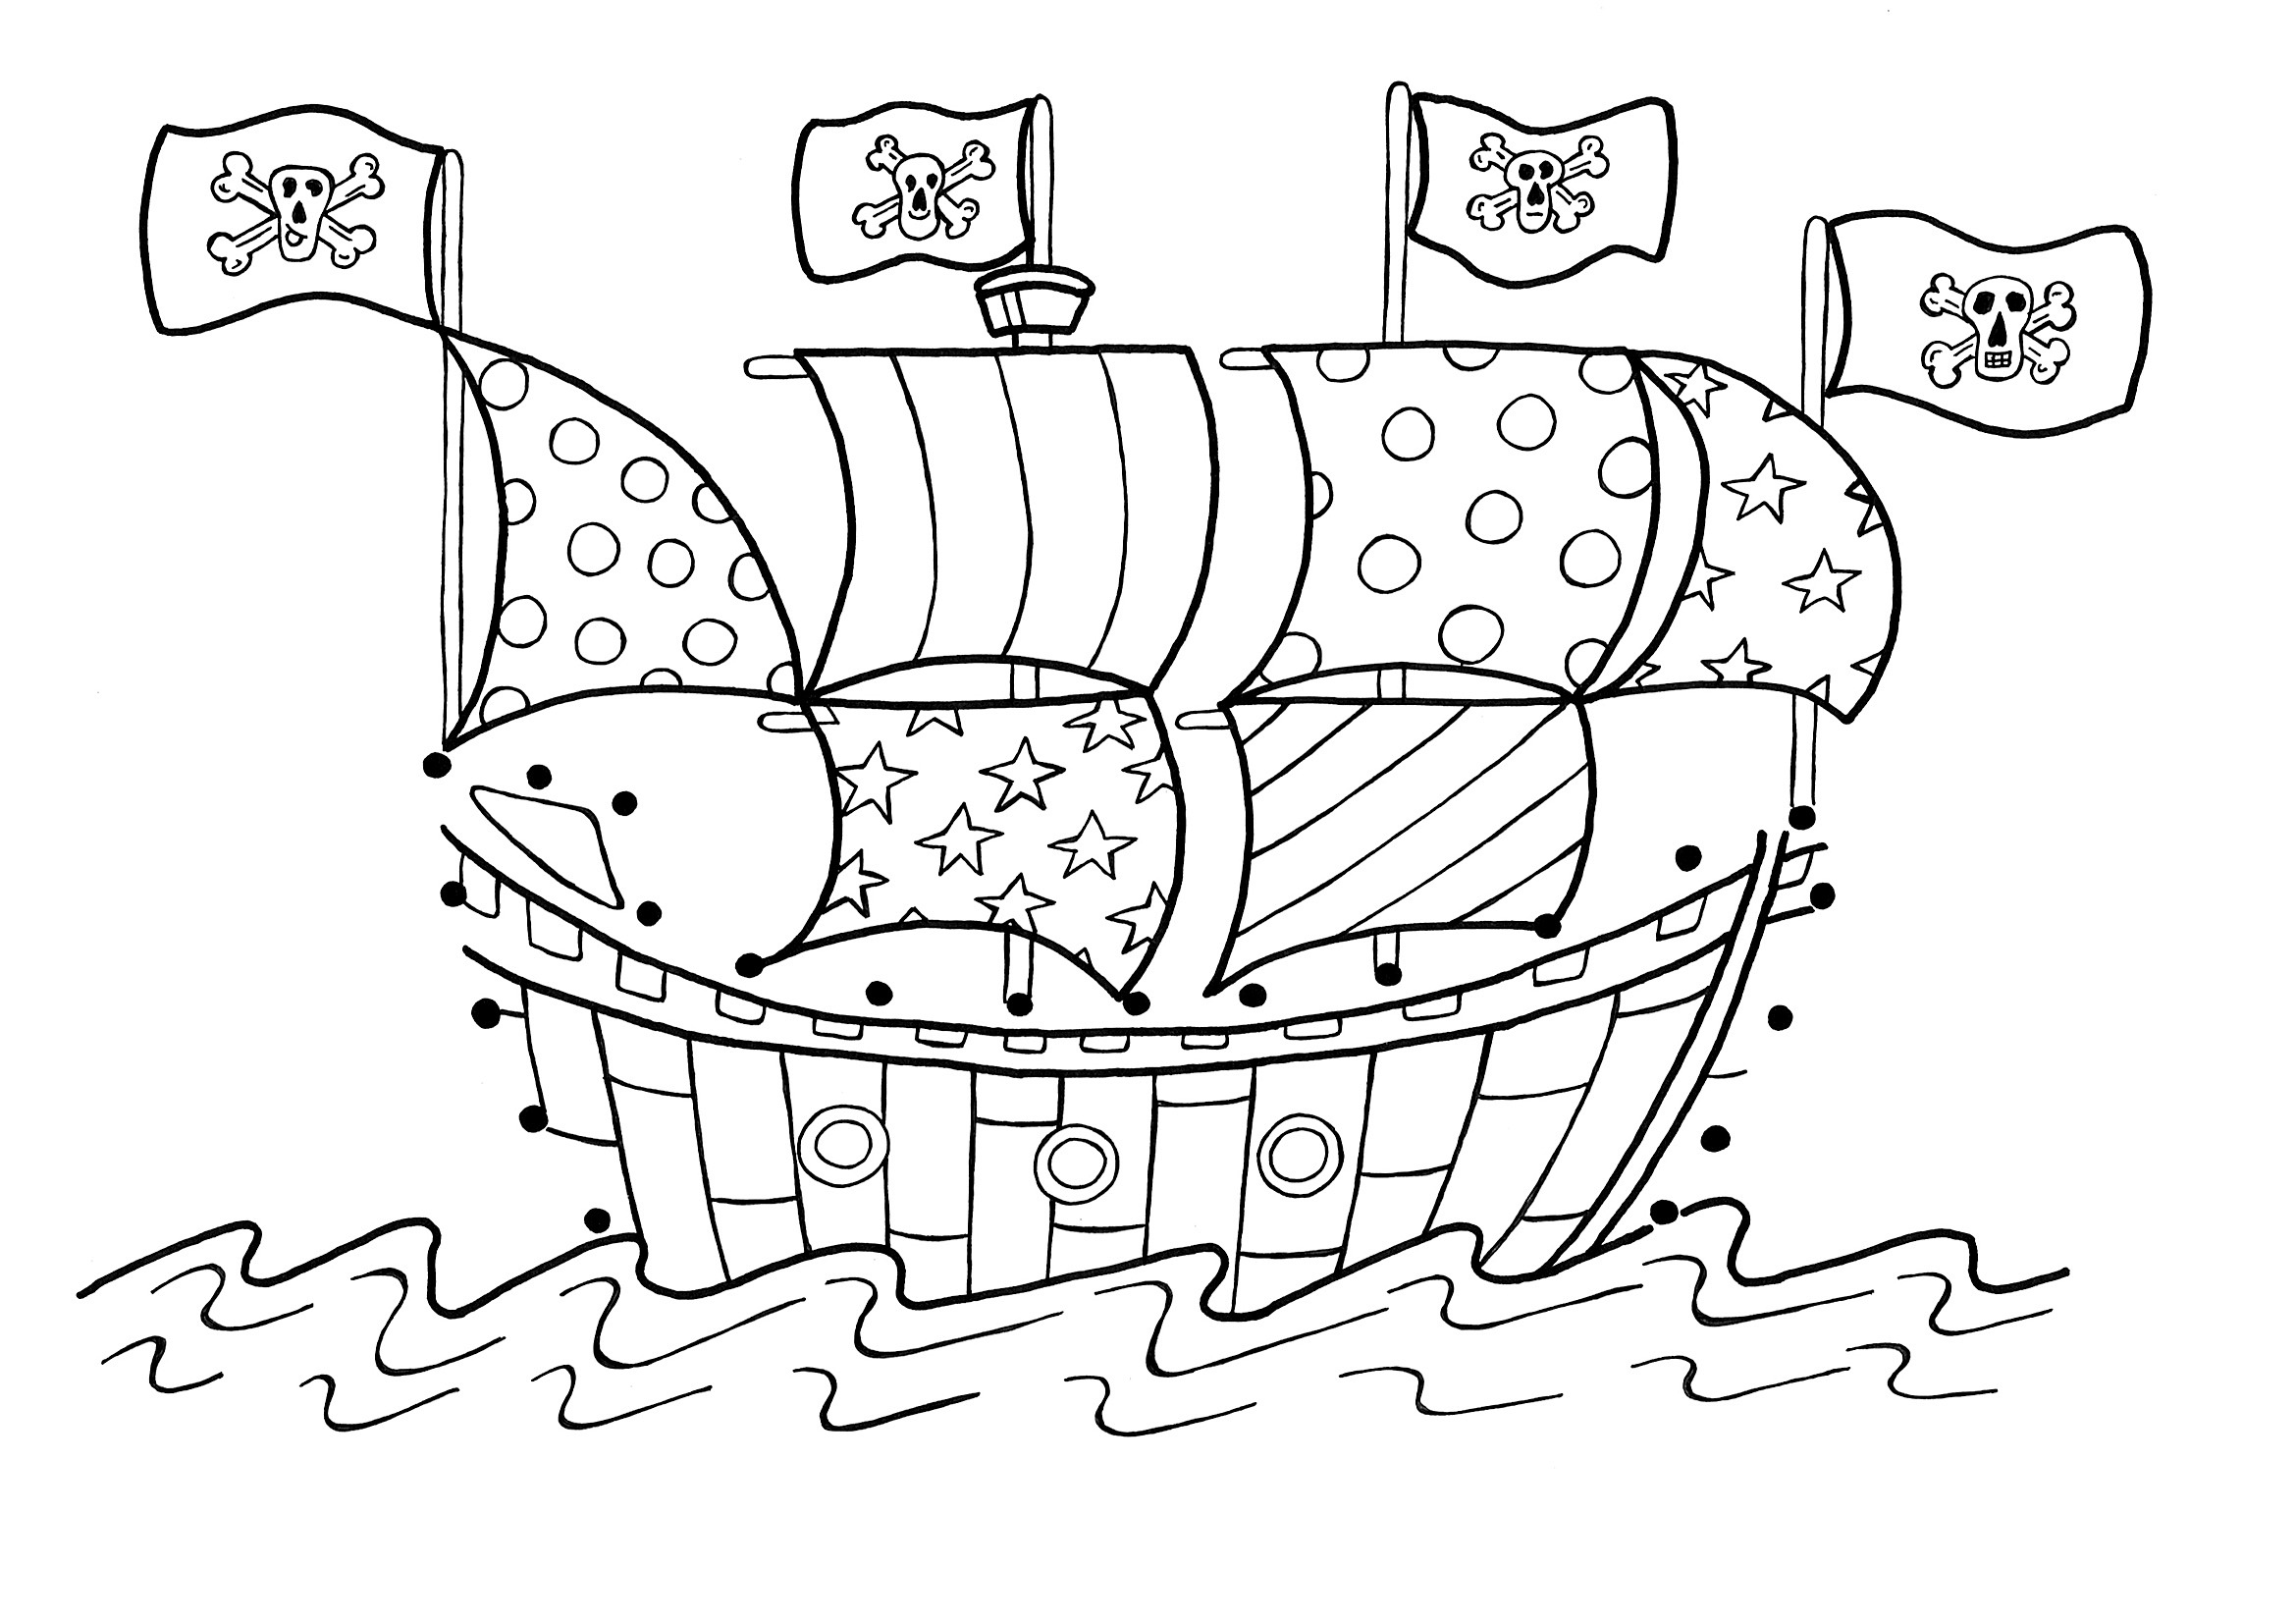 pirate ships colouring pages